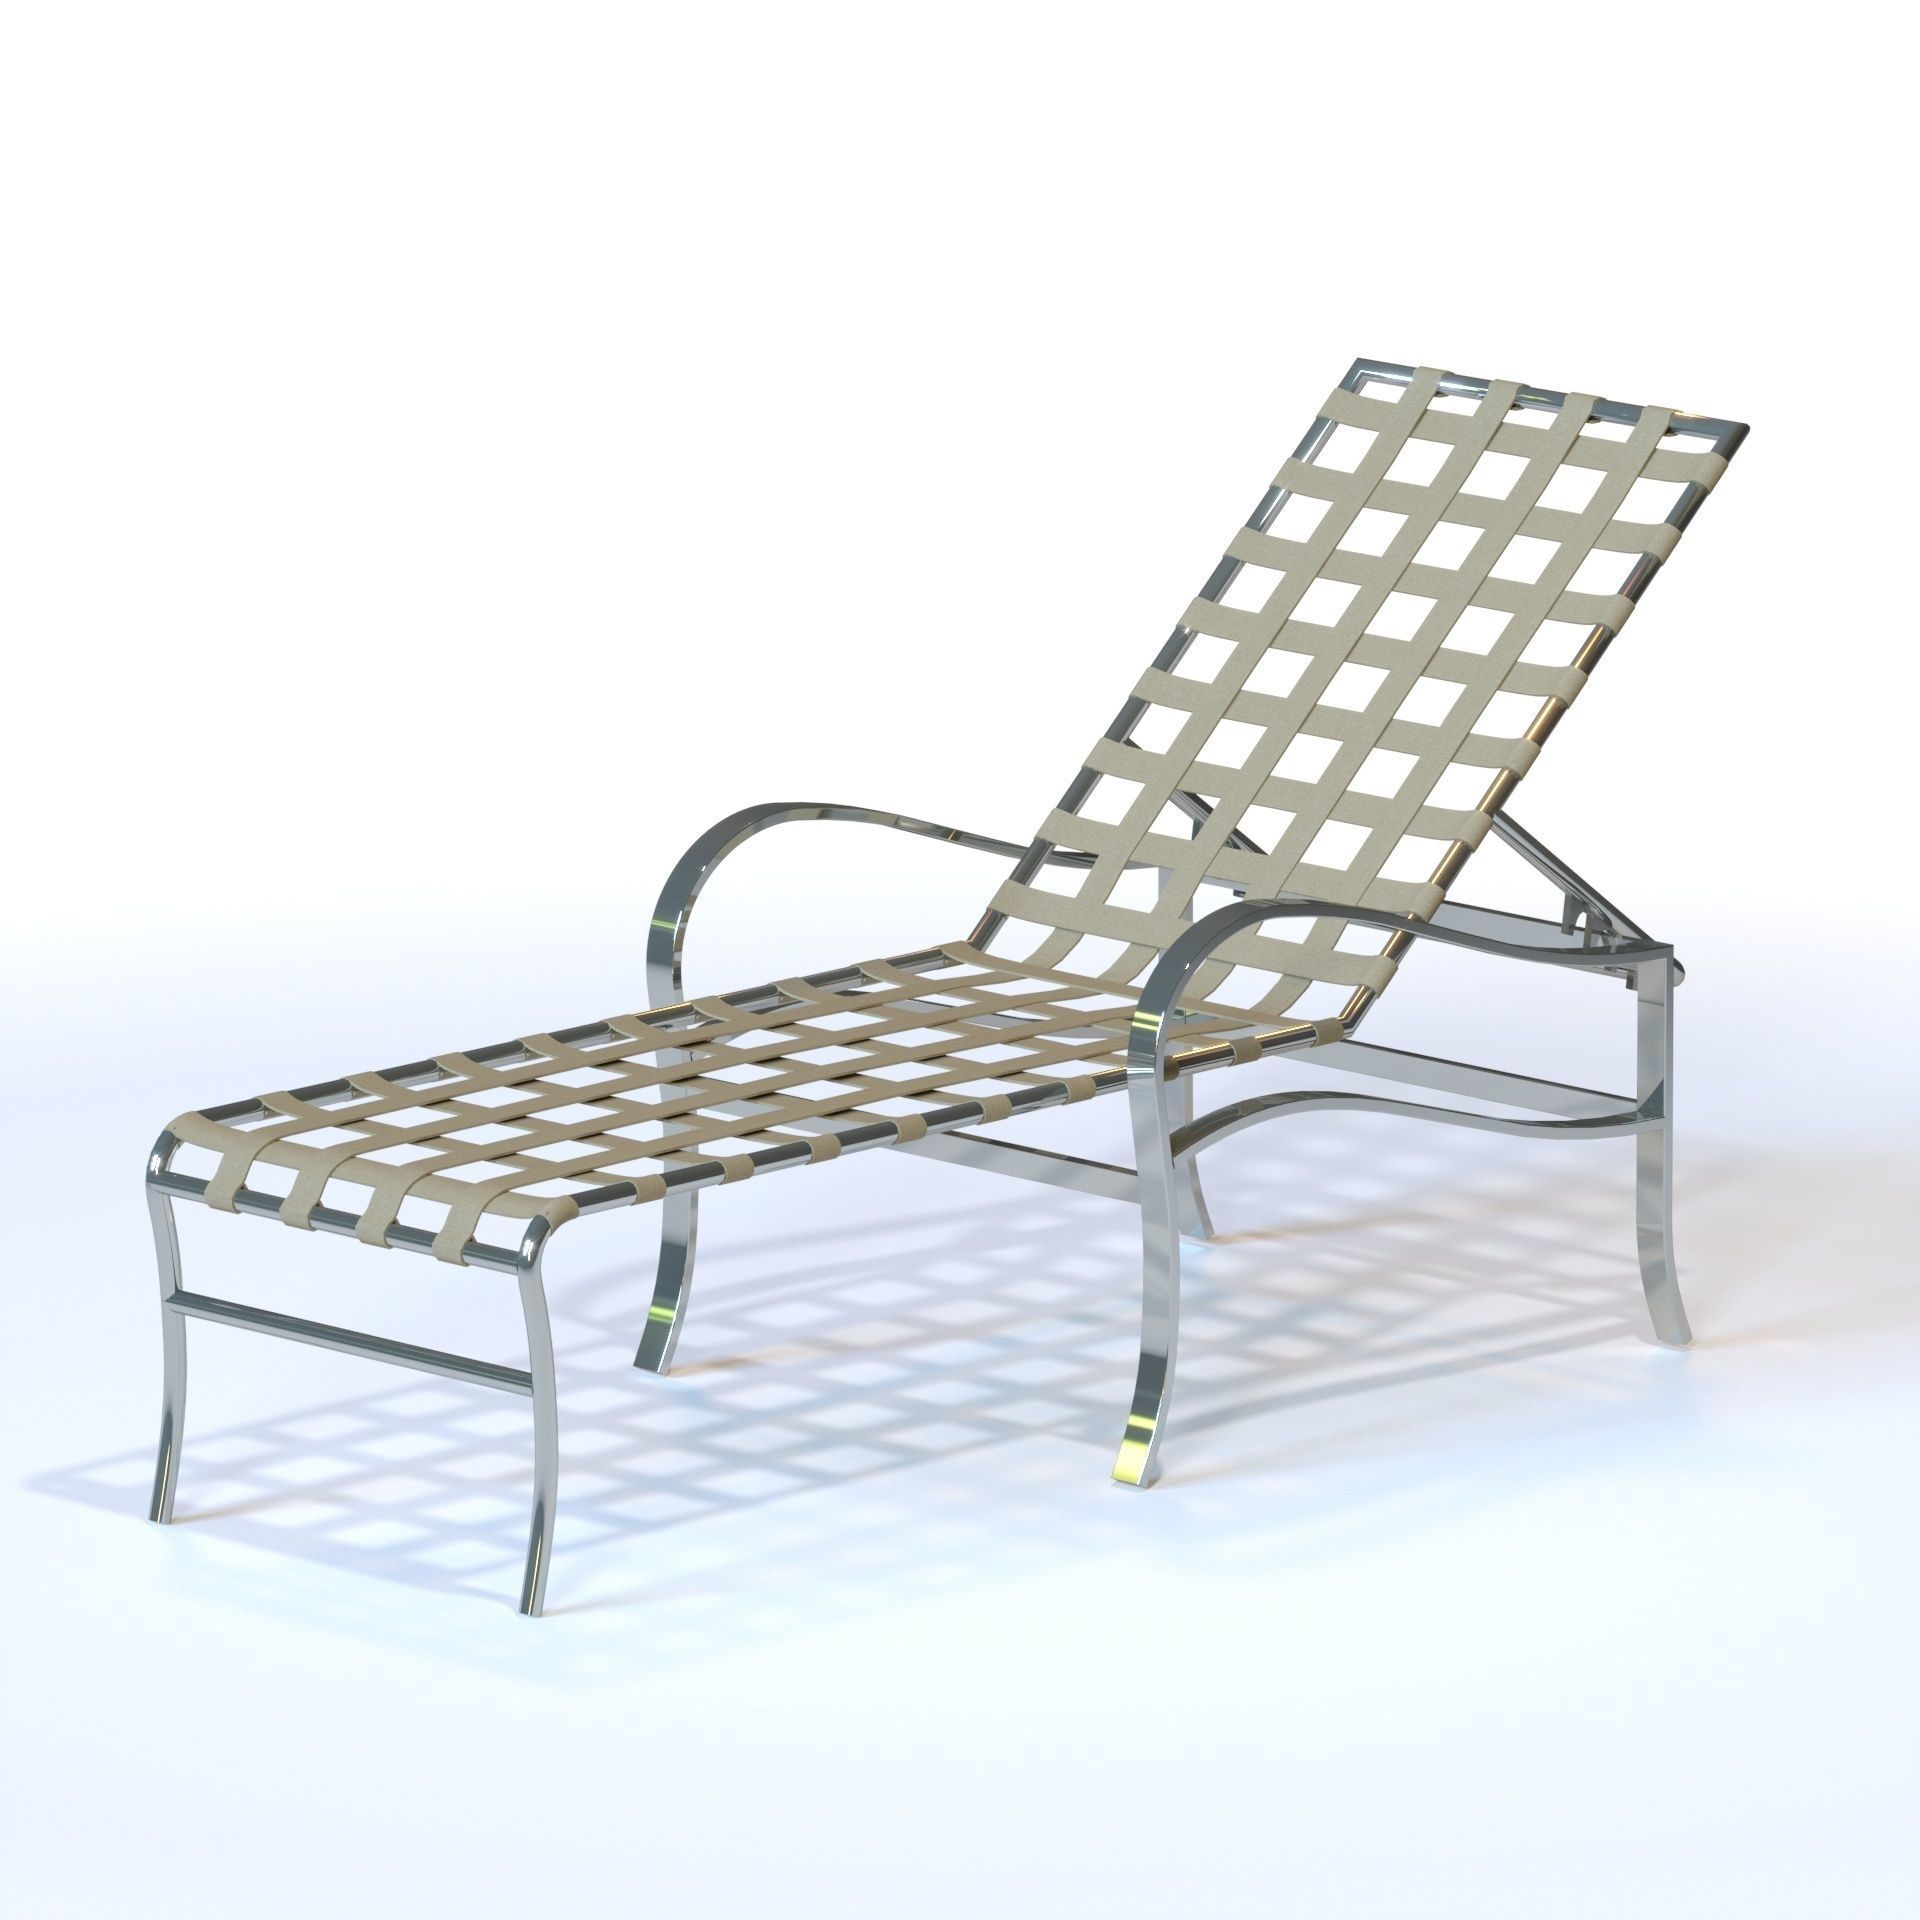 Astonishing Tropitone By Casual Living Palladian Strap Chaise Lounge 3D Model Home Interior And Landscaping Ponolsignezvosmurscom